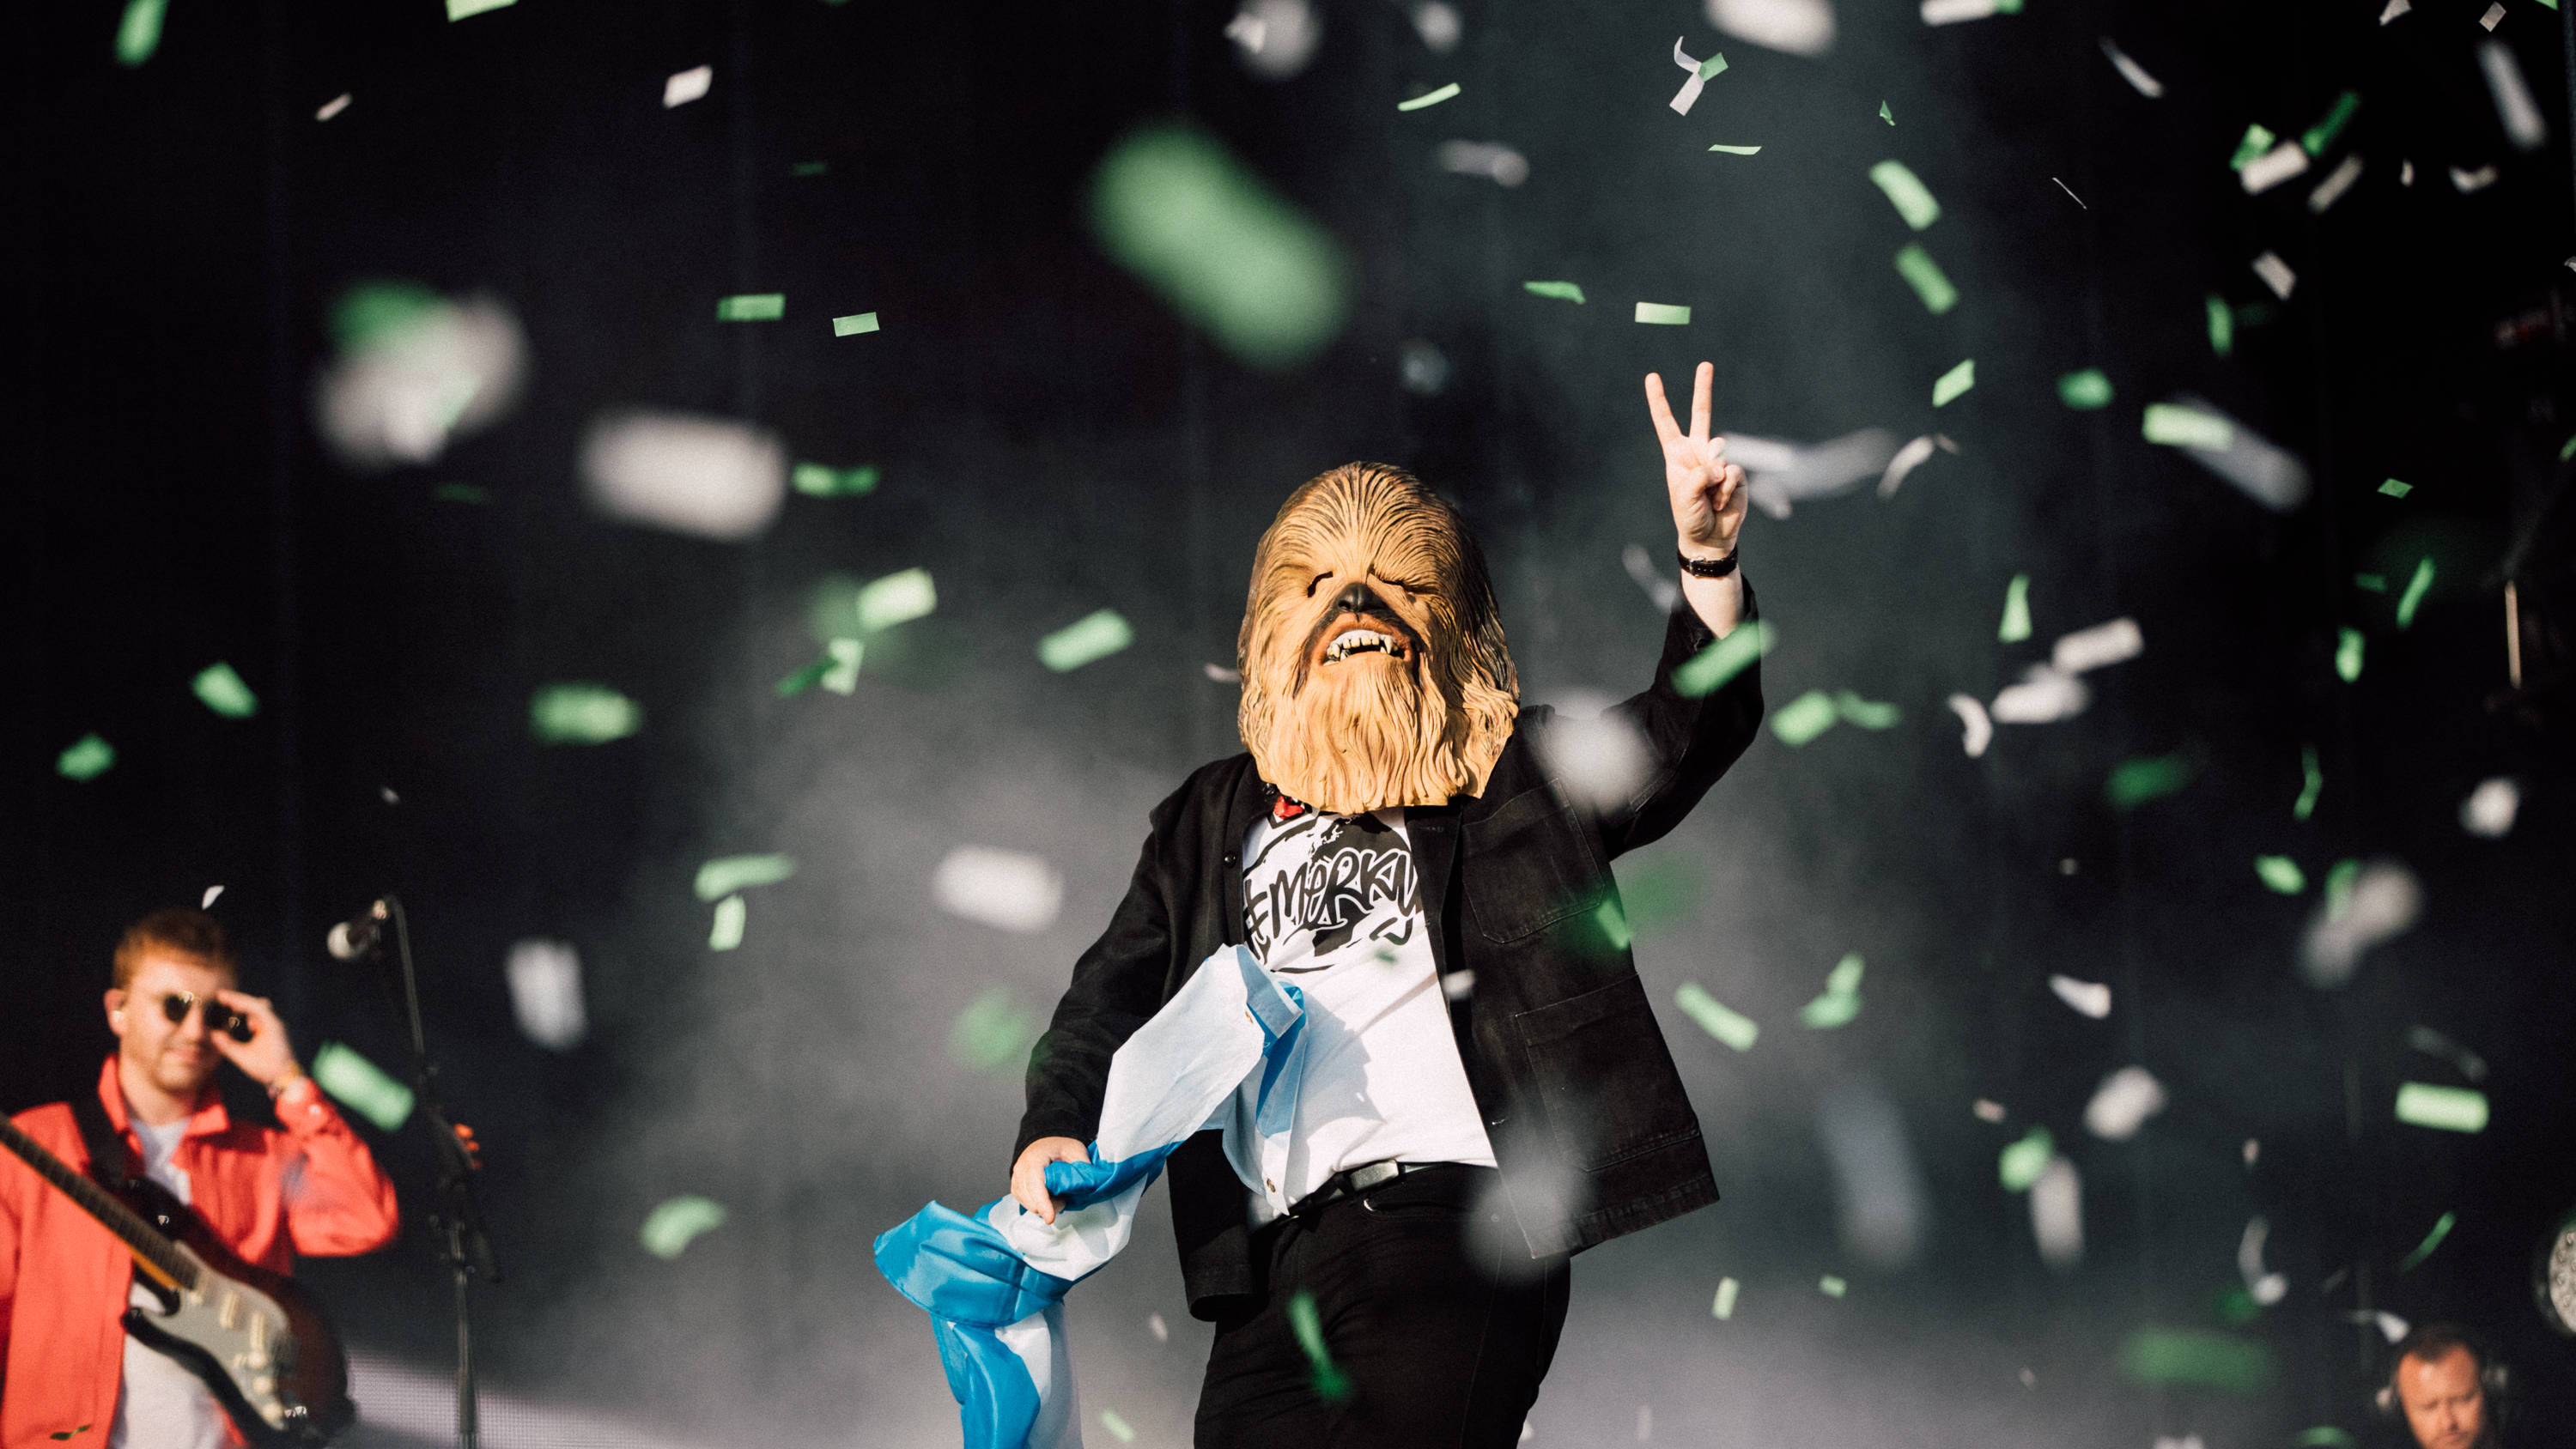 Lewis Capaldi trolls Noel Gallagher with Chewbacca mask at TRNSMT festival